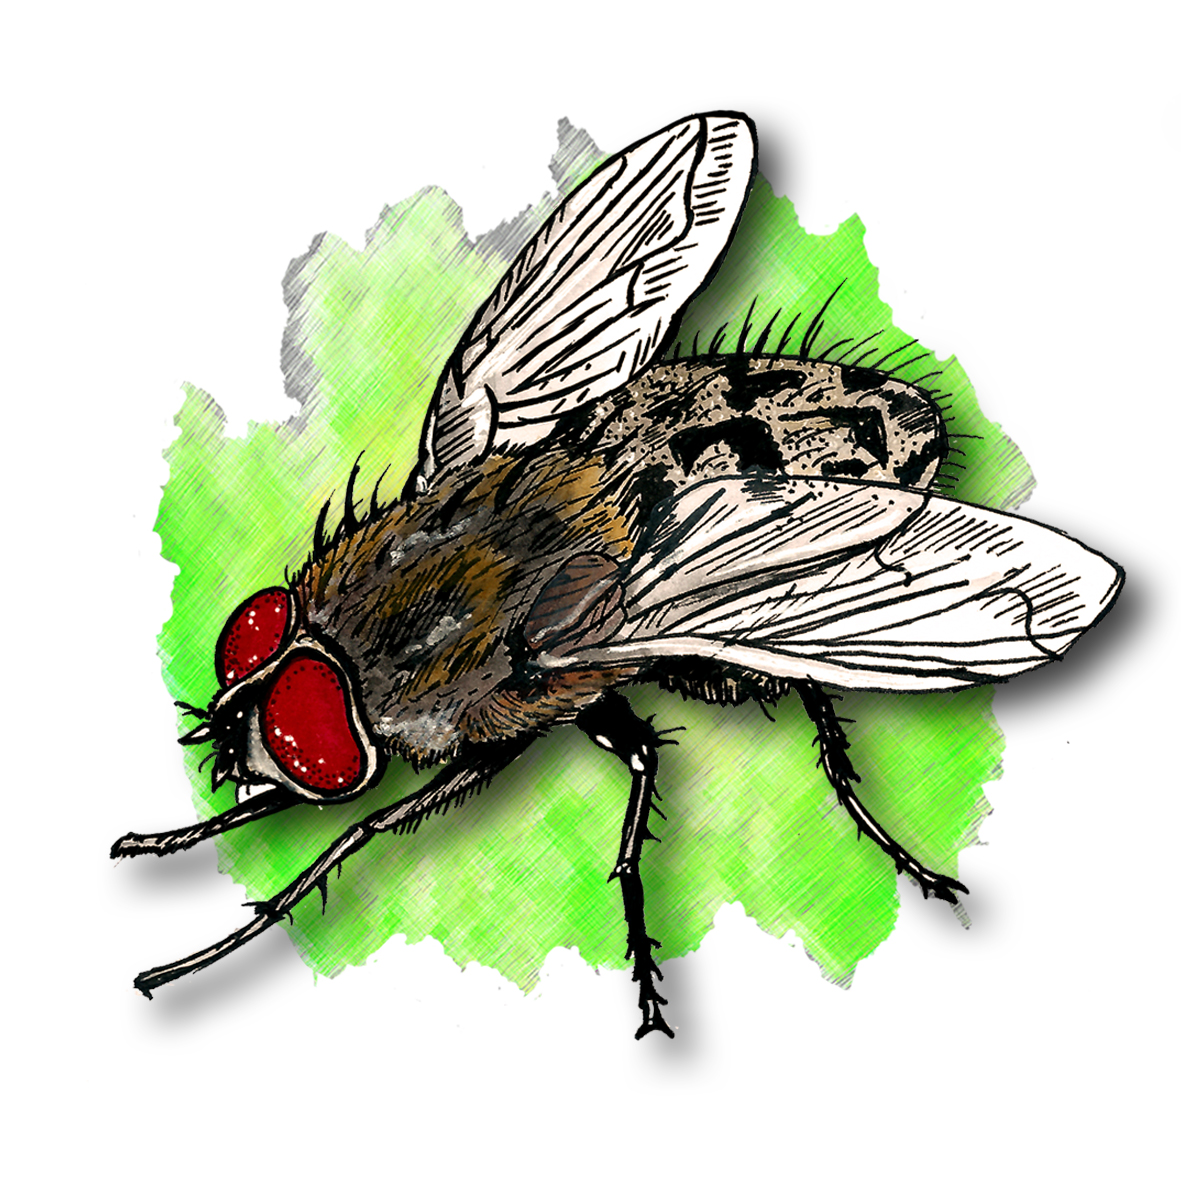 16. Cluster Fly